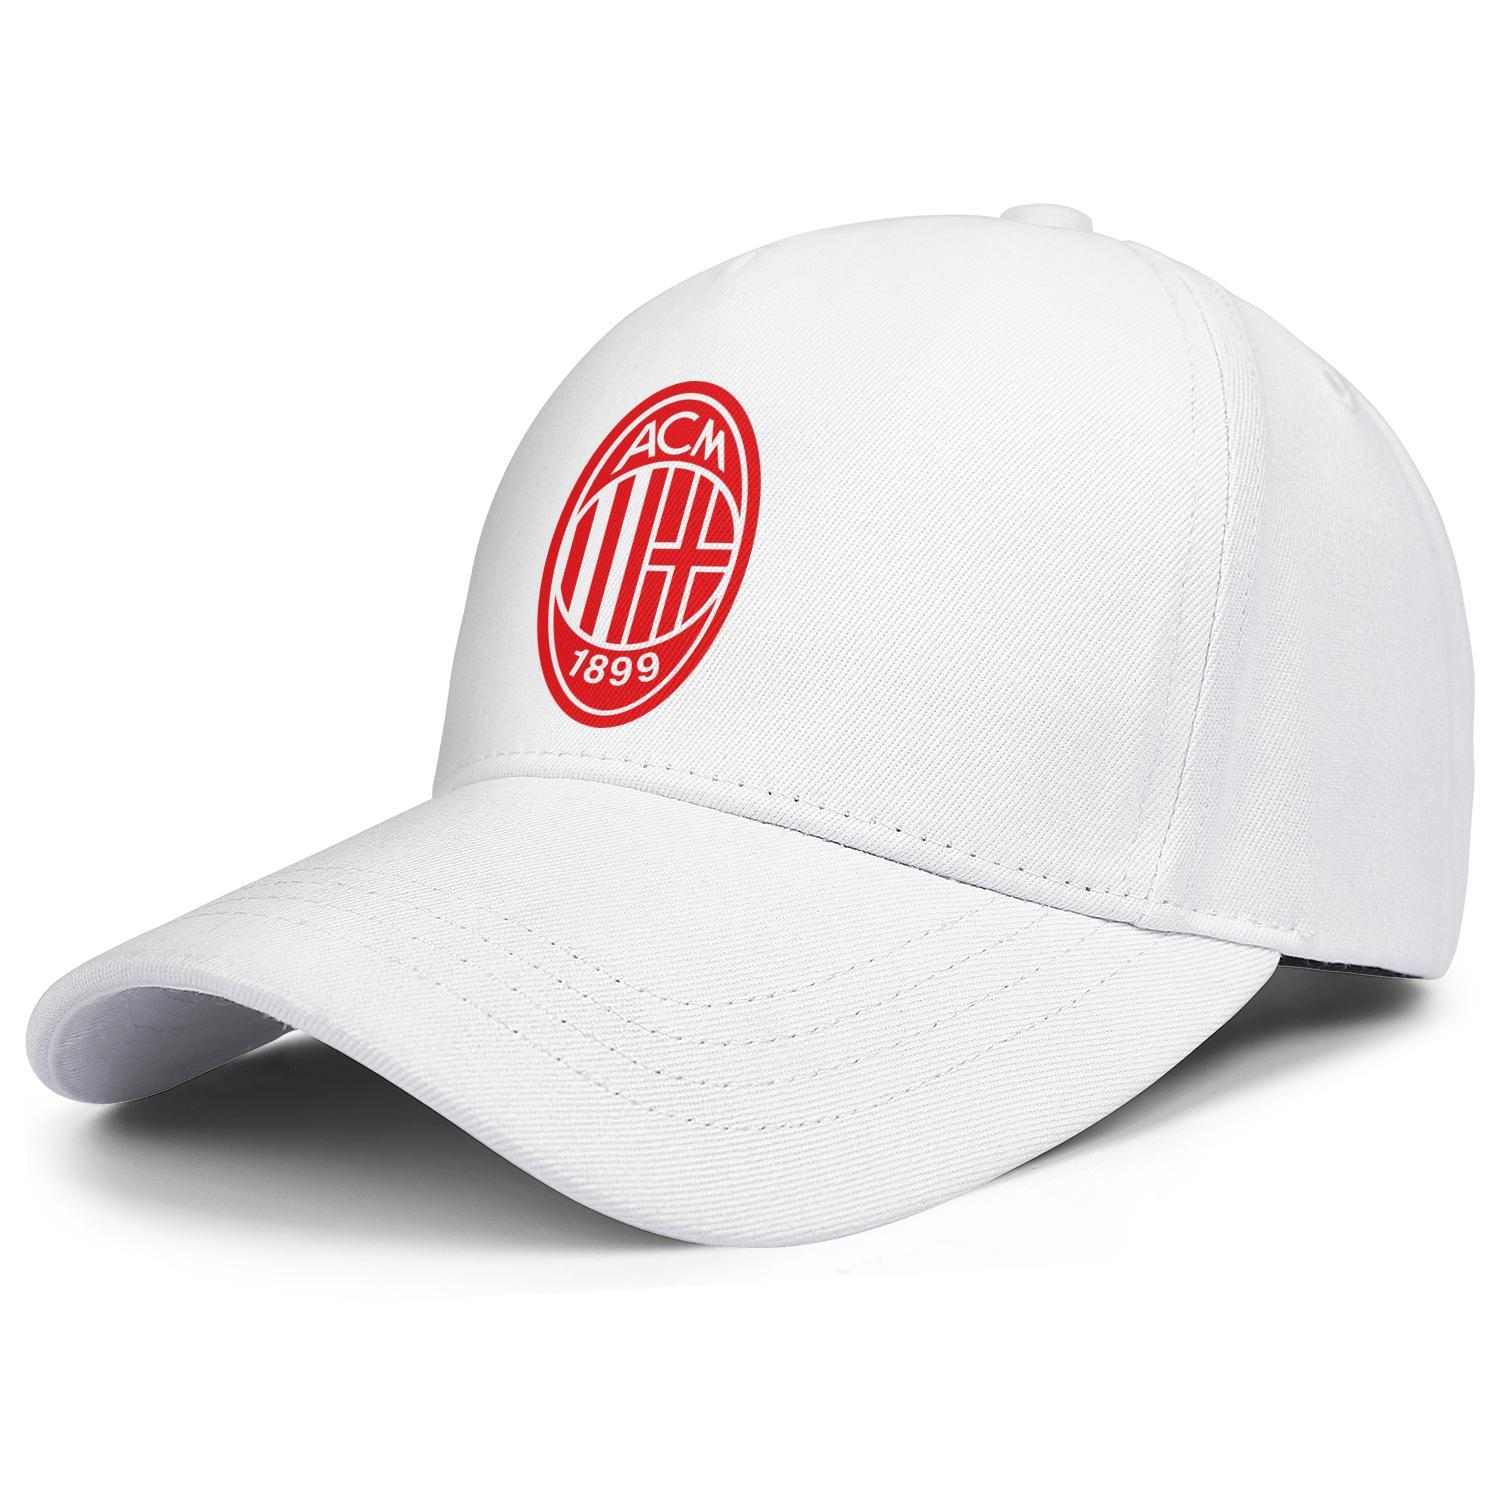 A.C. Milan I Rossoneri l Diavolo ACM red white mens and women trucker cap baseball styles custom mesh hats